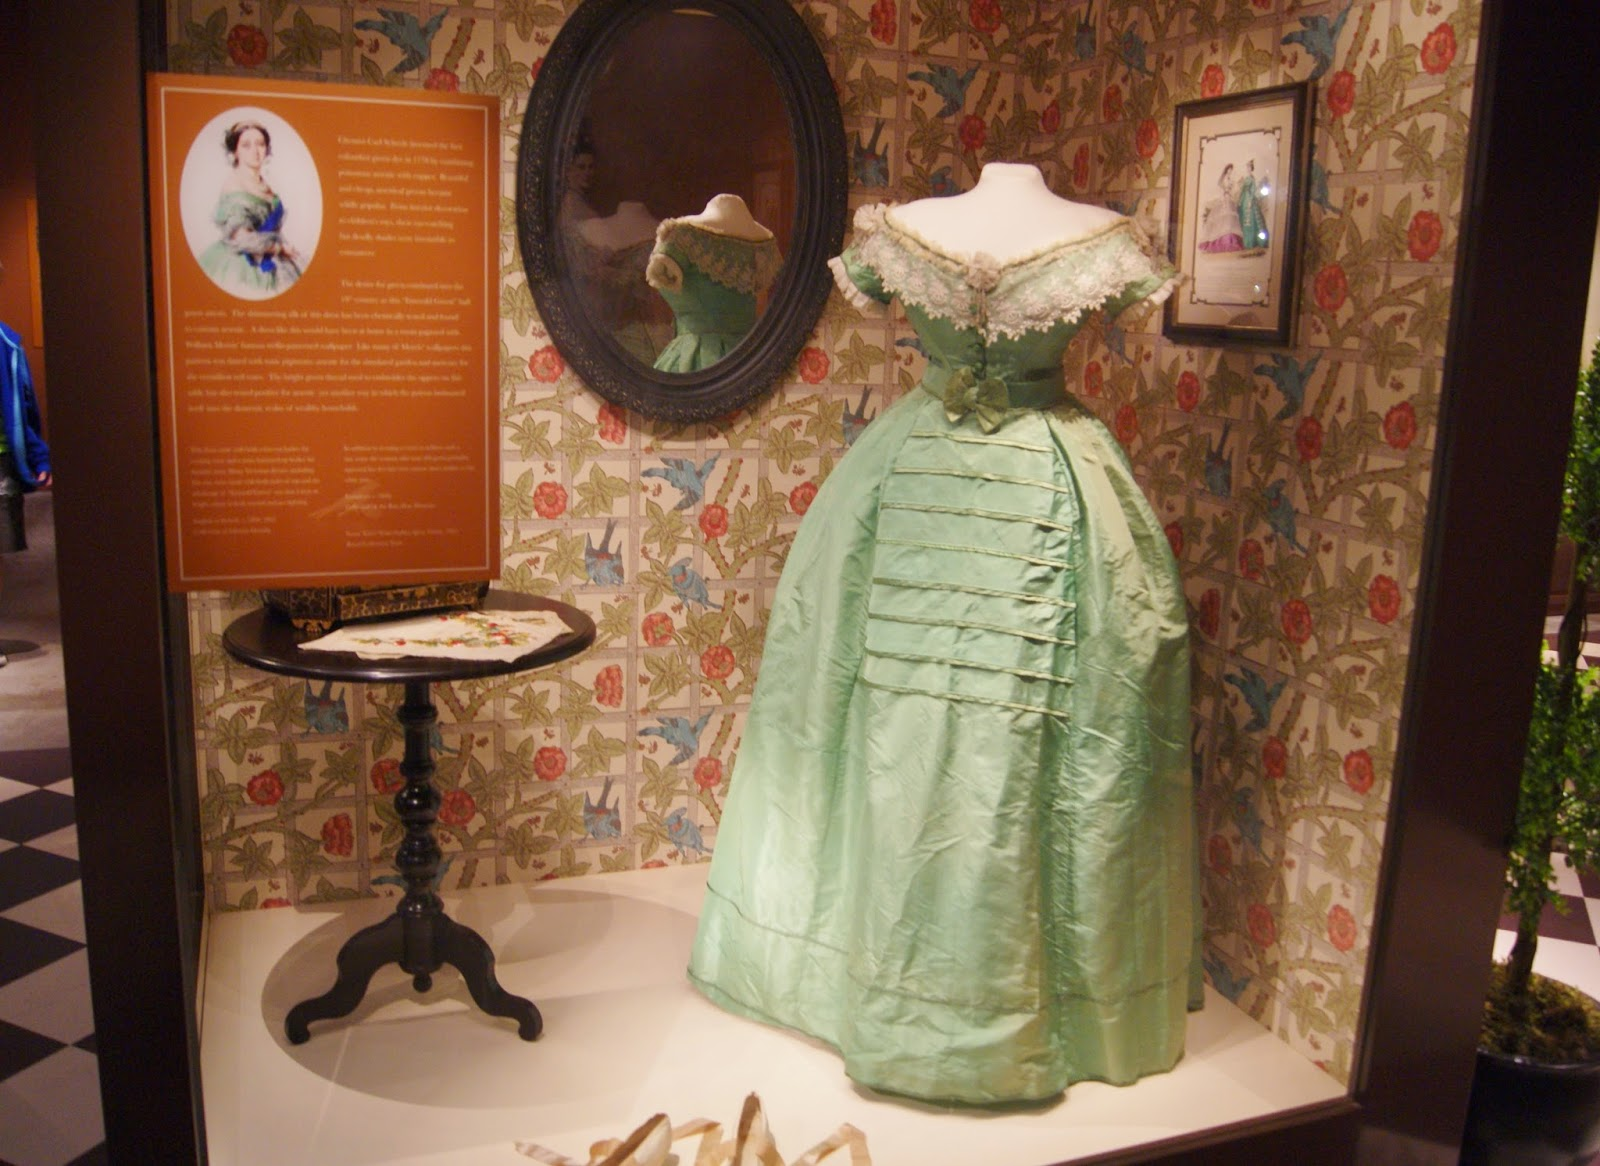 Fashion Victims: The Pleasures and Perils of Dress in the 19th Century Exhibit at Bata Shoe Museum in Toronto, Culture, The Purple Scarf, Melanie.Ps, Dress, Ontario, Canada, Clothing, History, Disease, Factory, Sewing, Arsenic Green